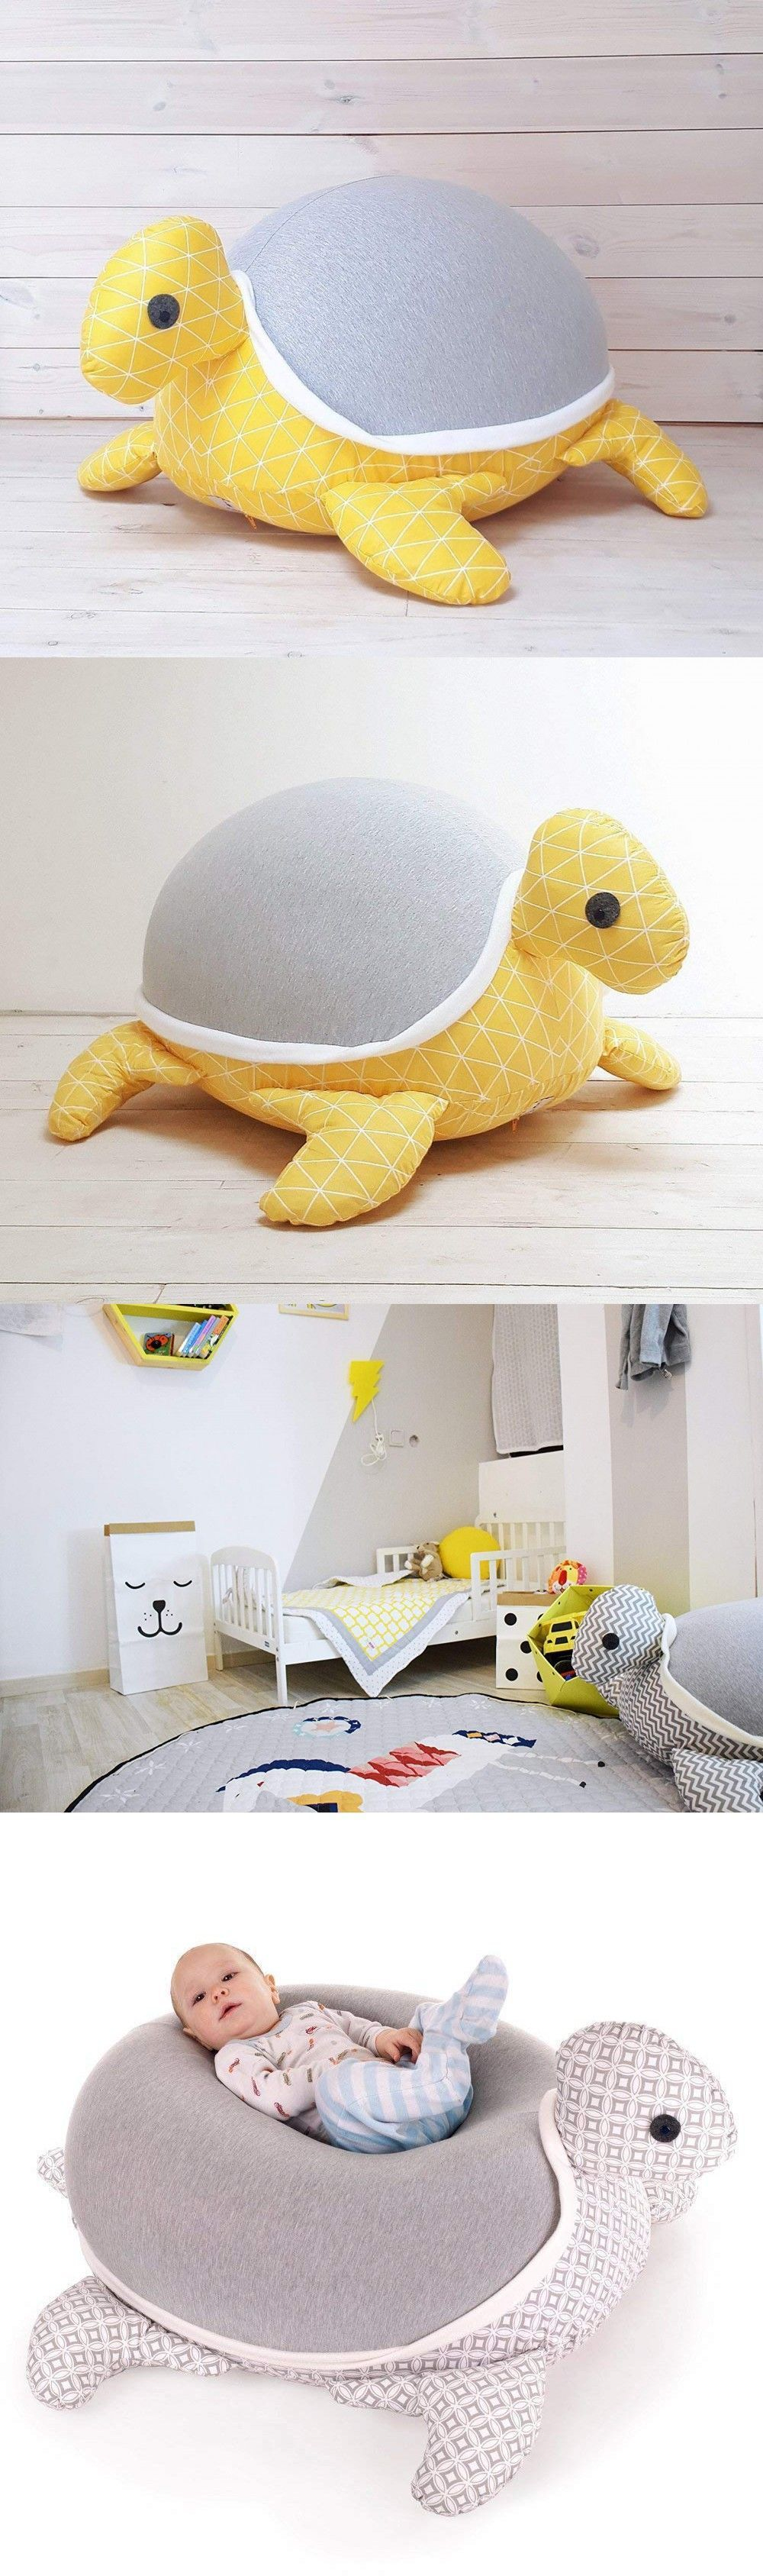 Giant Floor Pillow Design With Turtles